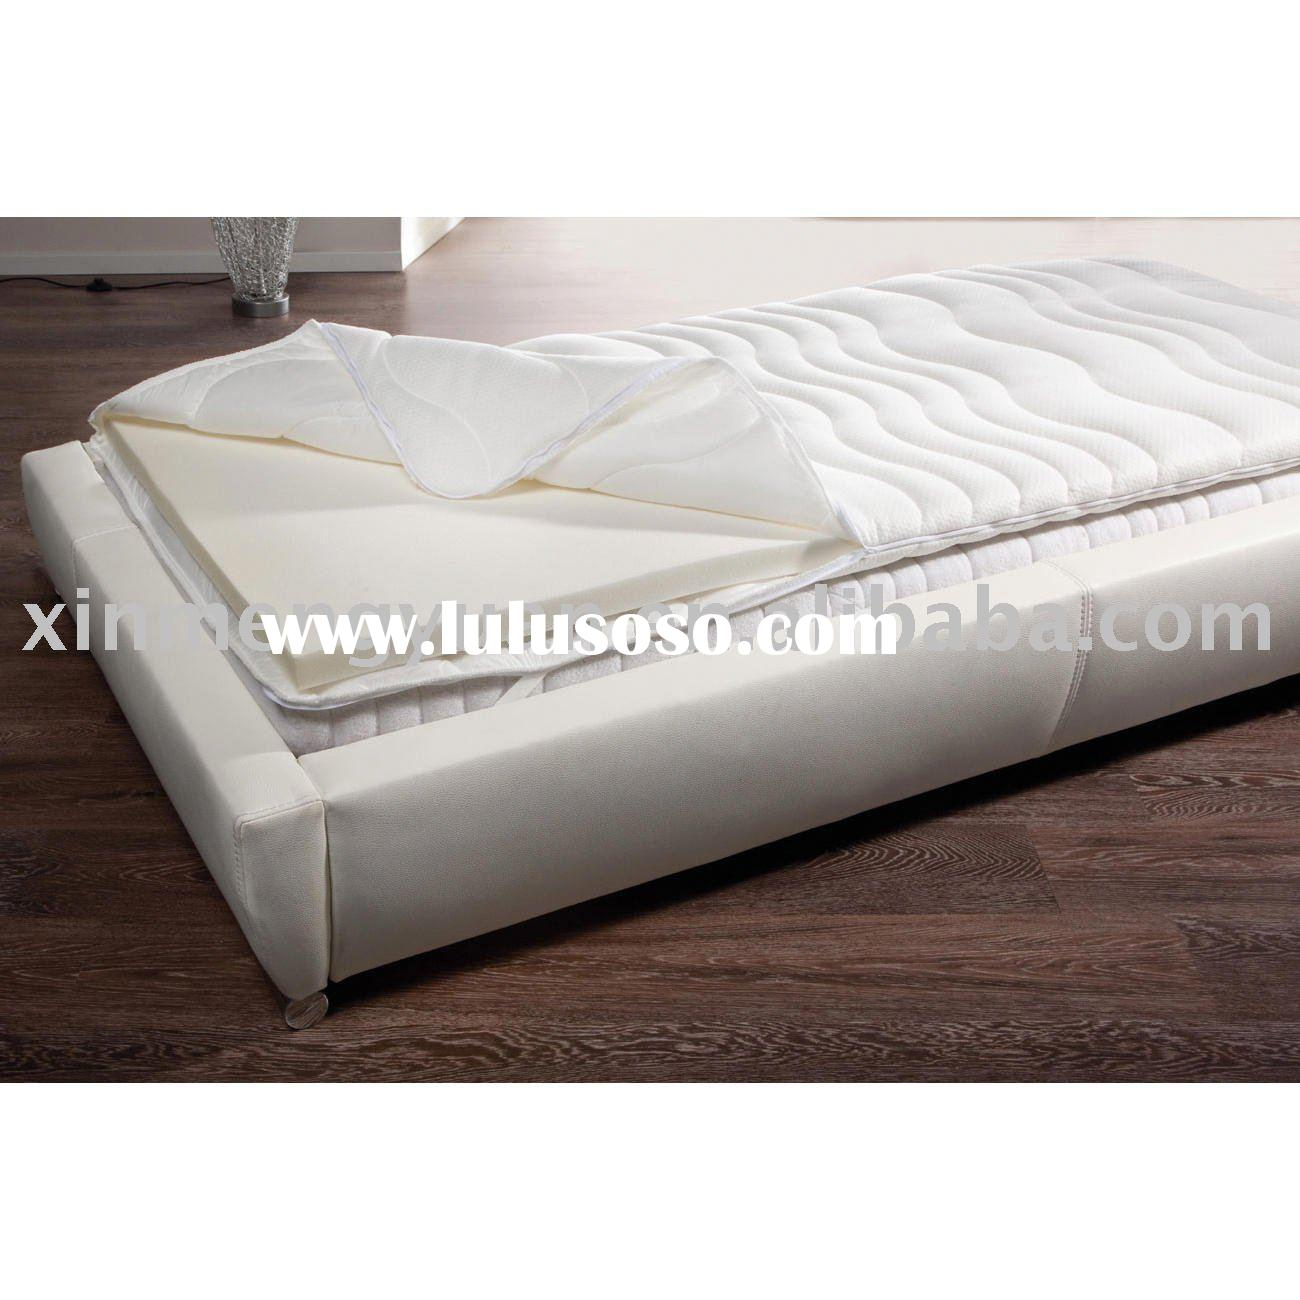 Memory Foam Mattress Cover Memory Foam Mattress Cover Manufacturers In Page 1